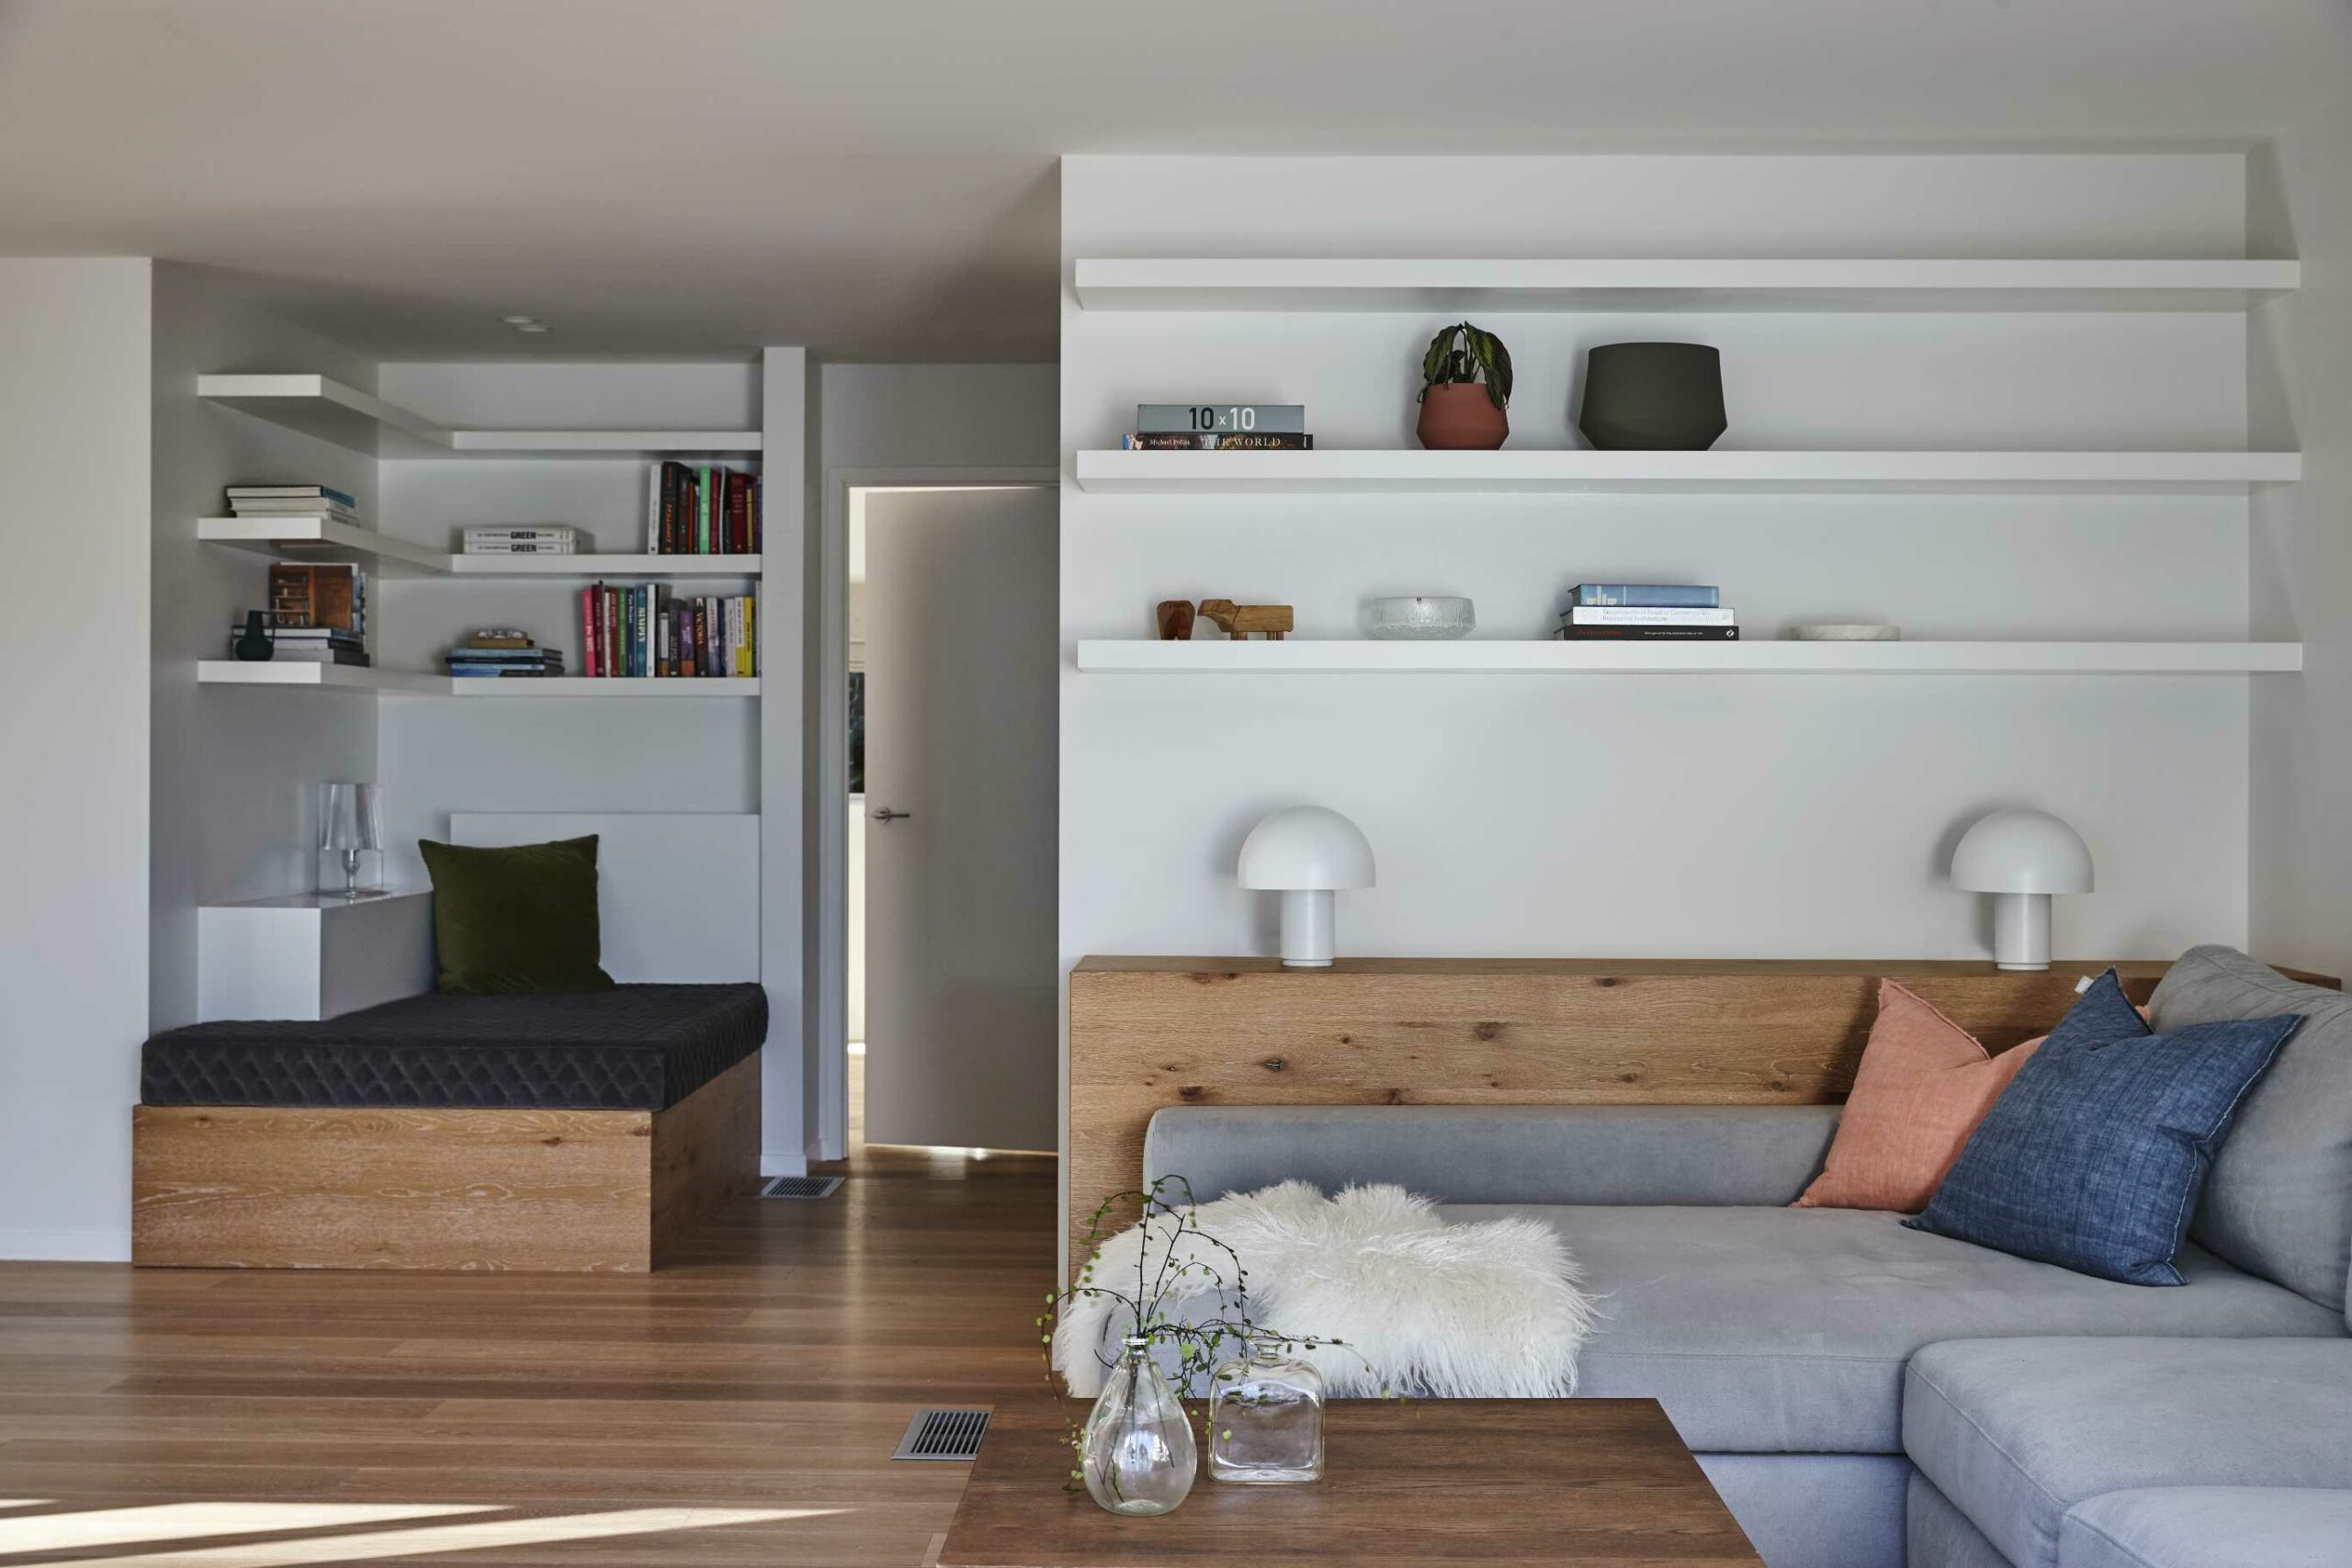 Living room and Day bed